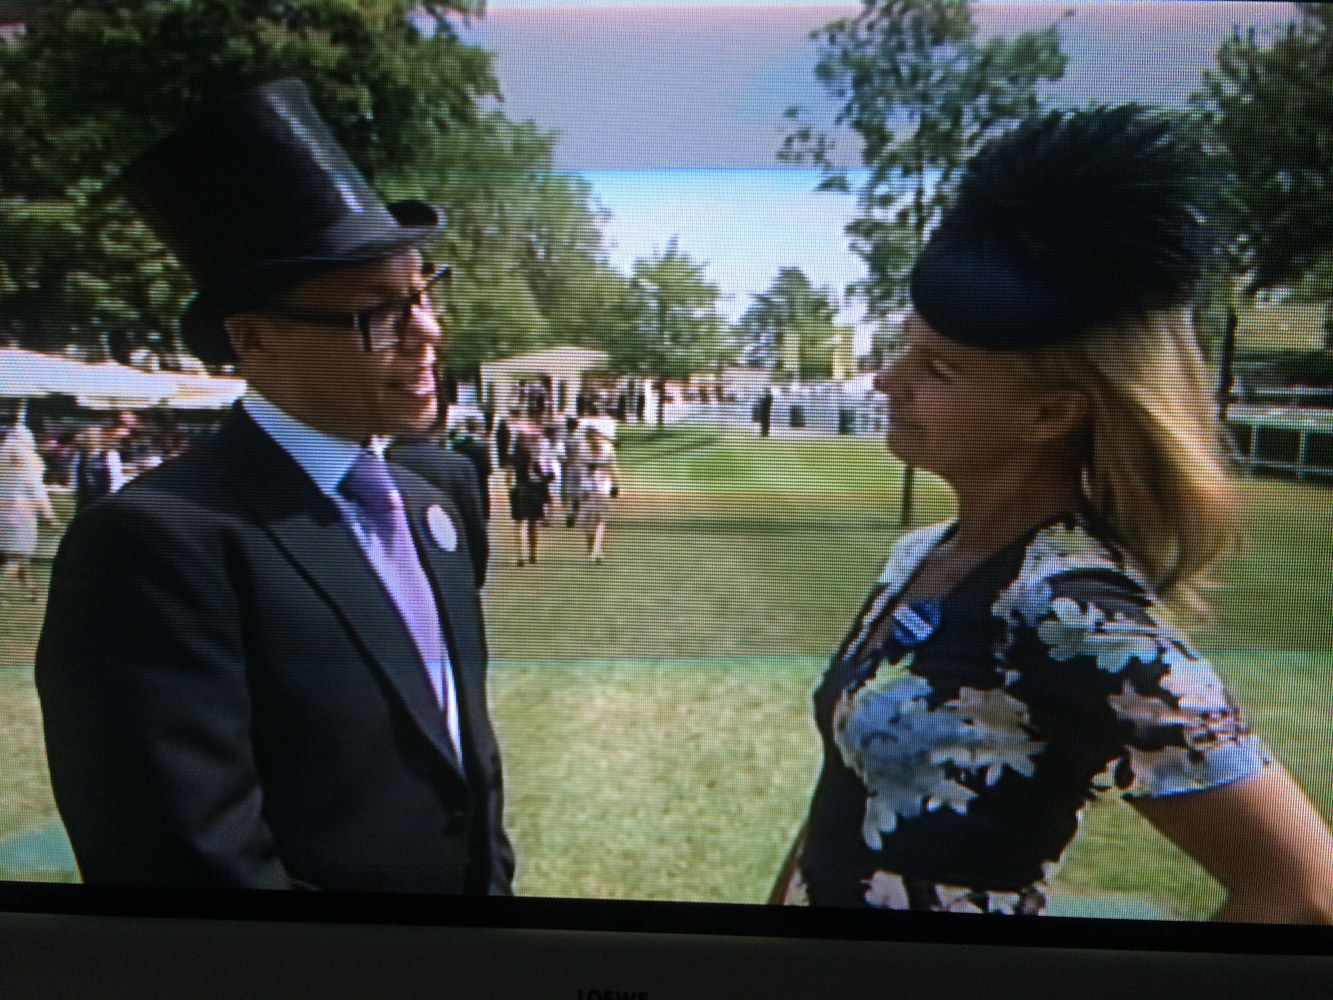 Gok interviewing Philippa in navy 'Betsy' at Royal Ascot  by Fiona Menzies